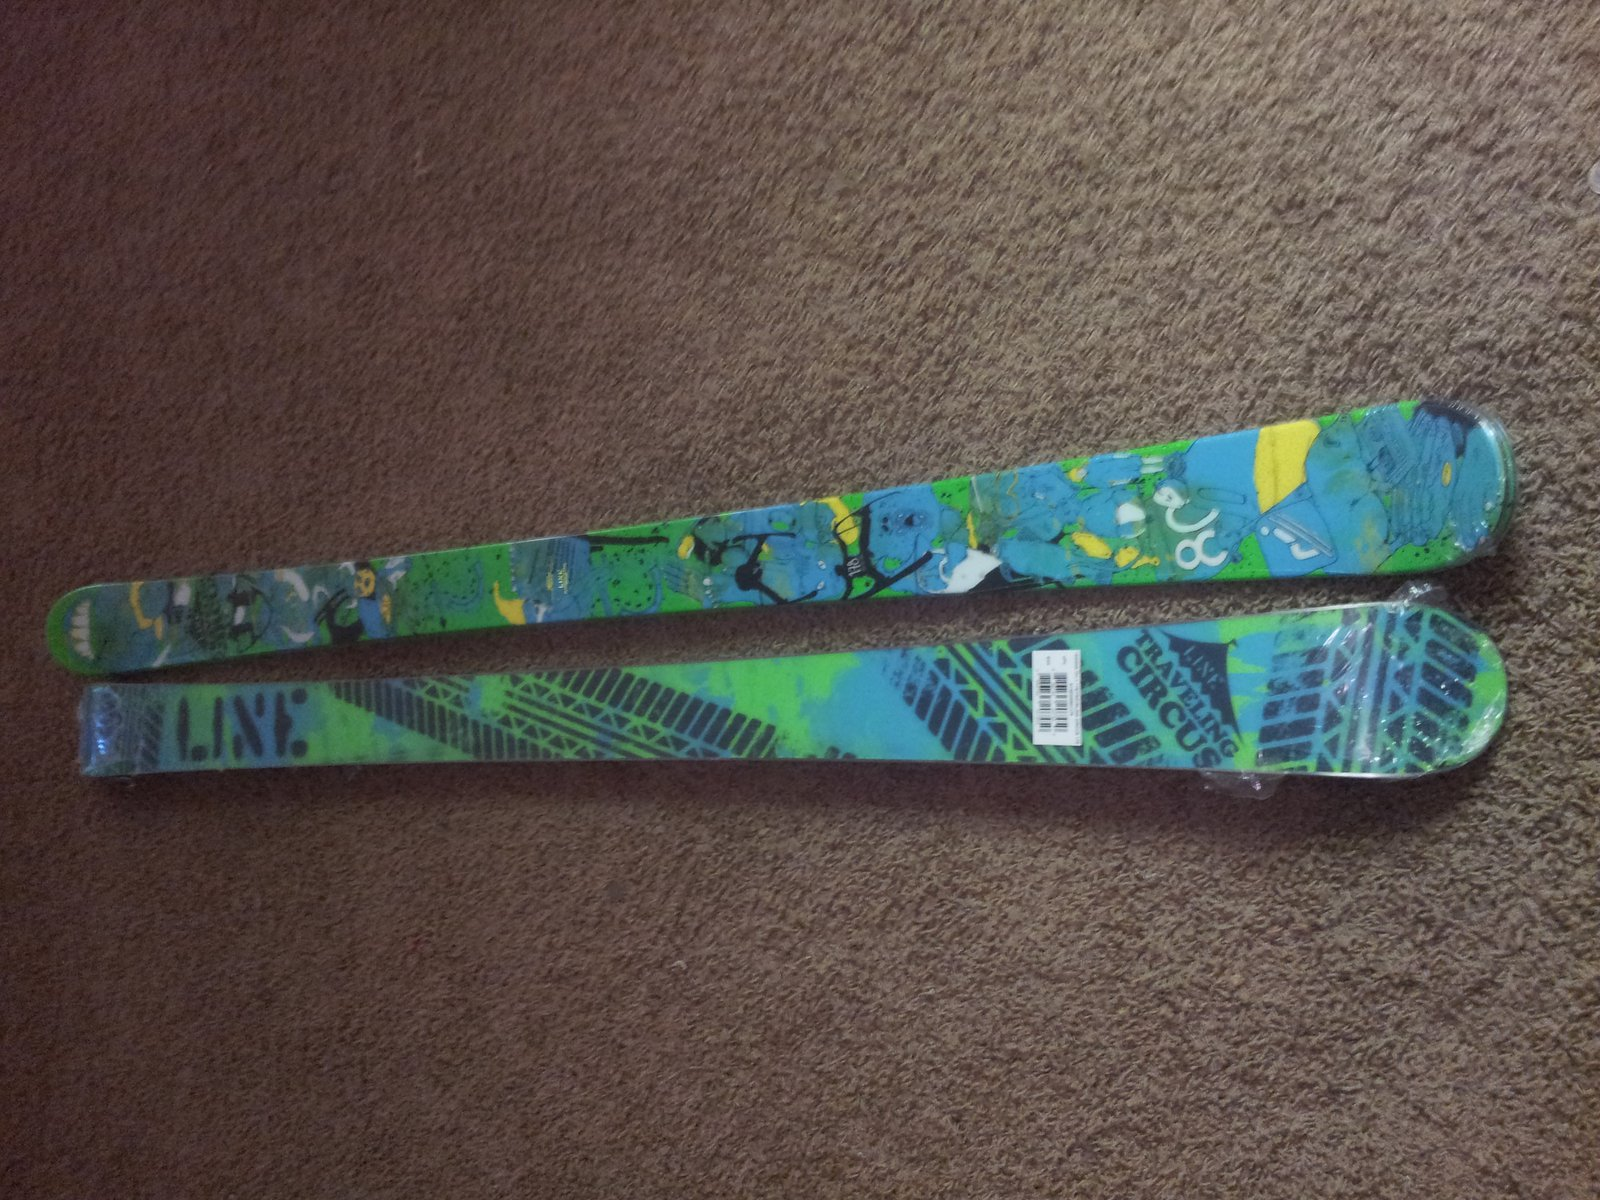 Two pairs of brand new 177 Traveling Circus Skis